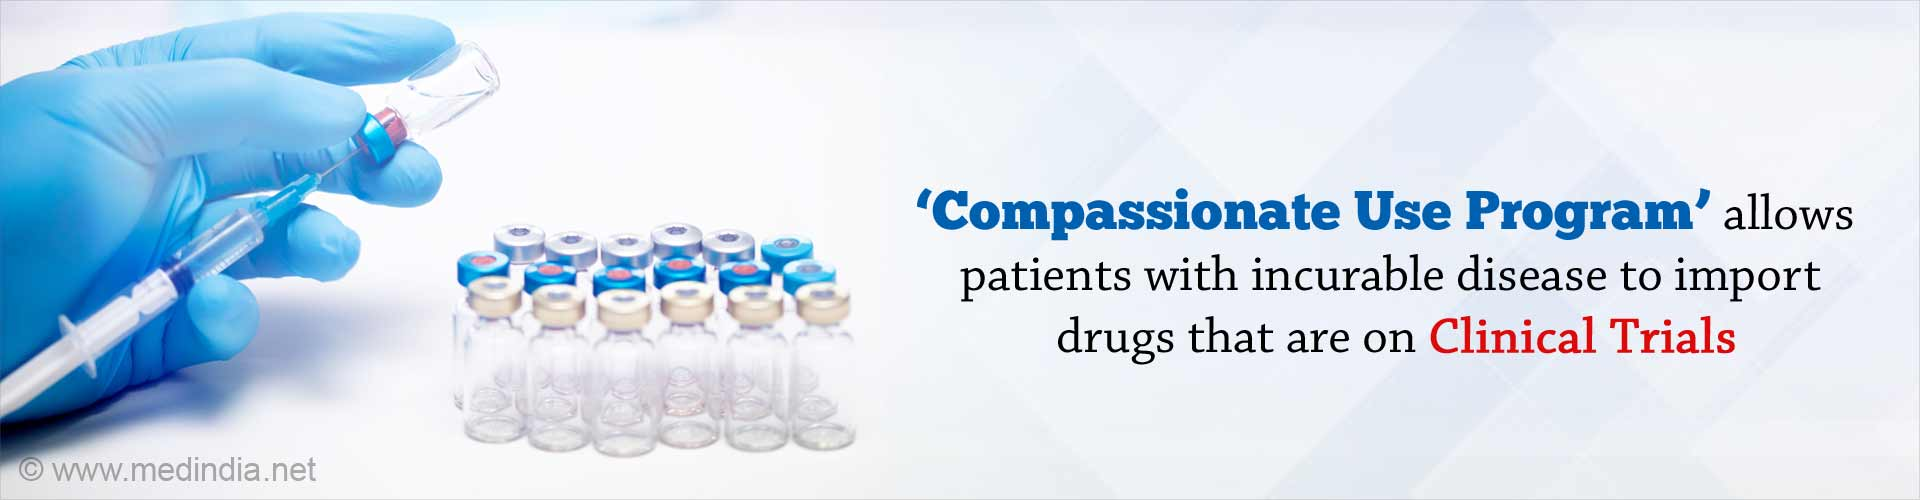 How to Import Drugs That are Still on Clinical Trial but Life Saving?